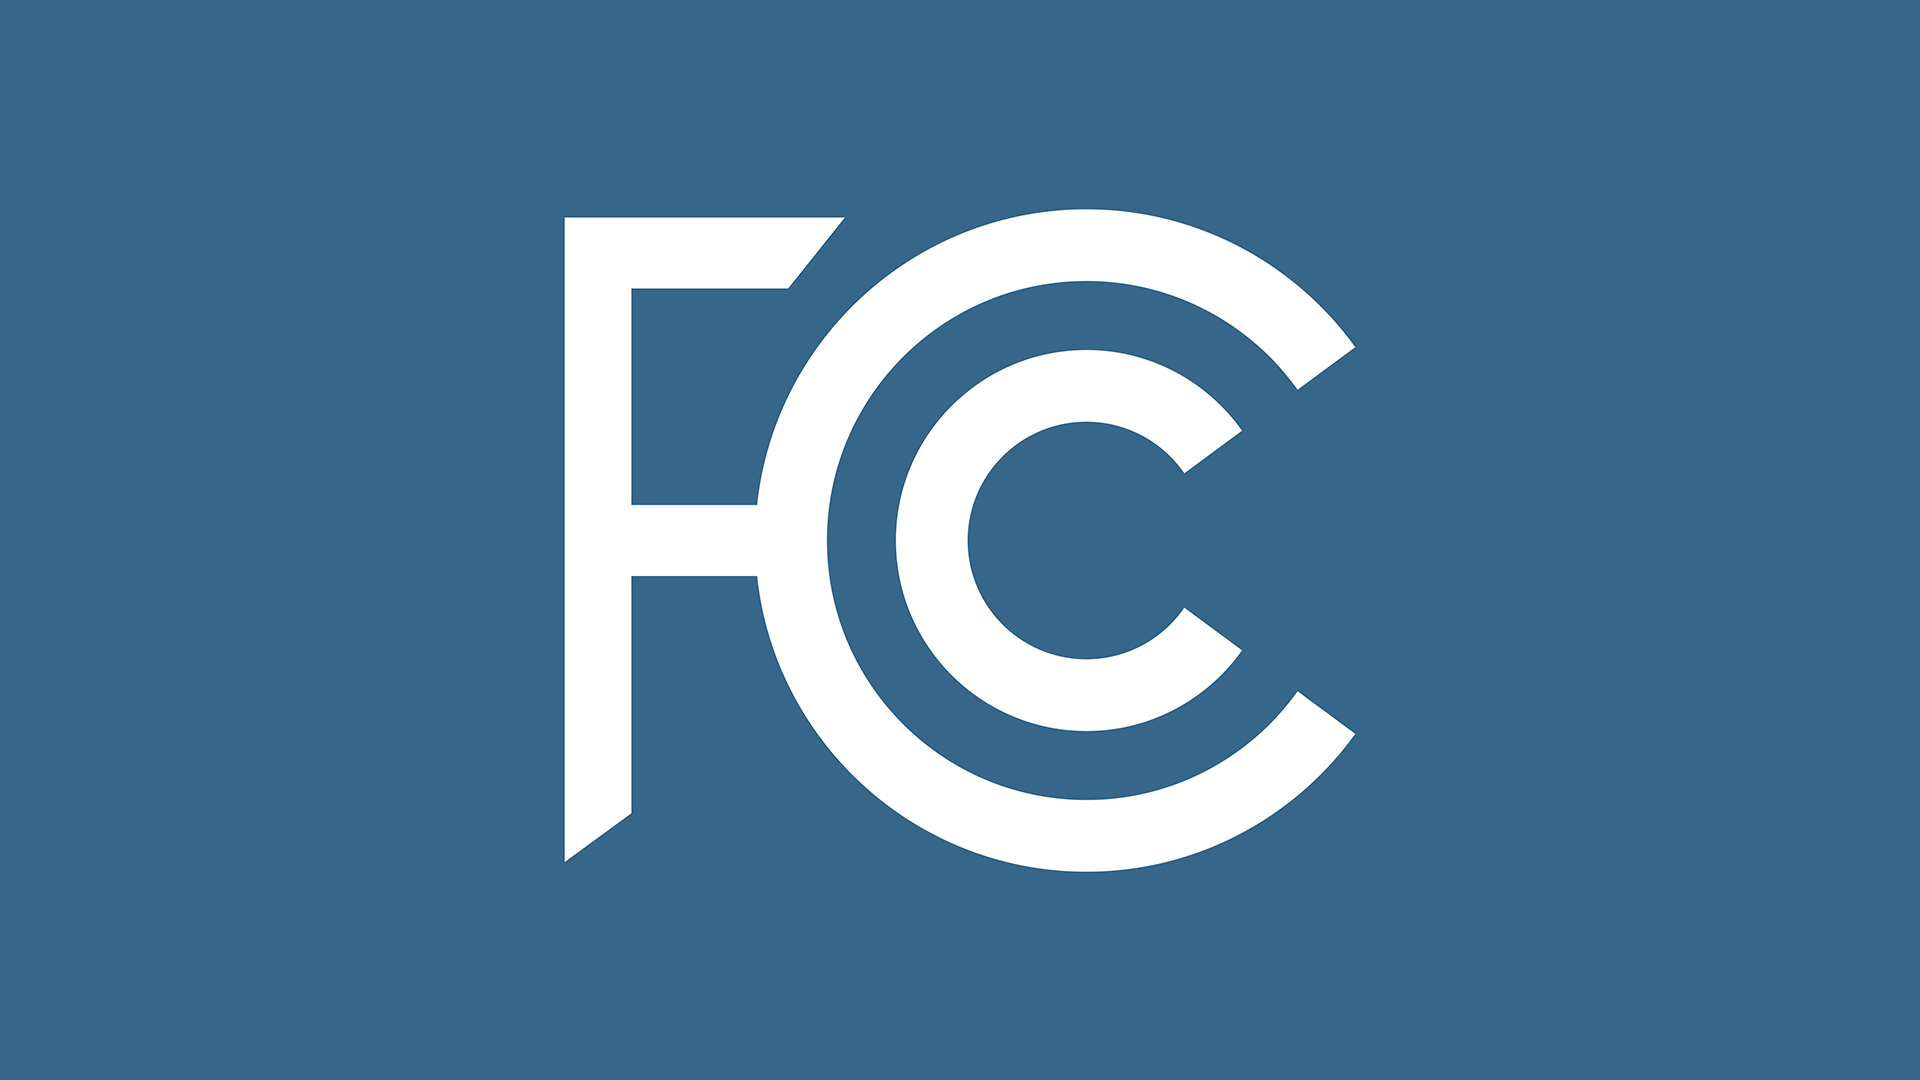 fcc-logo_white-on-dark-blue